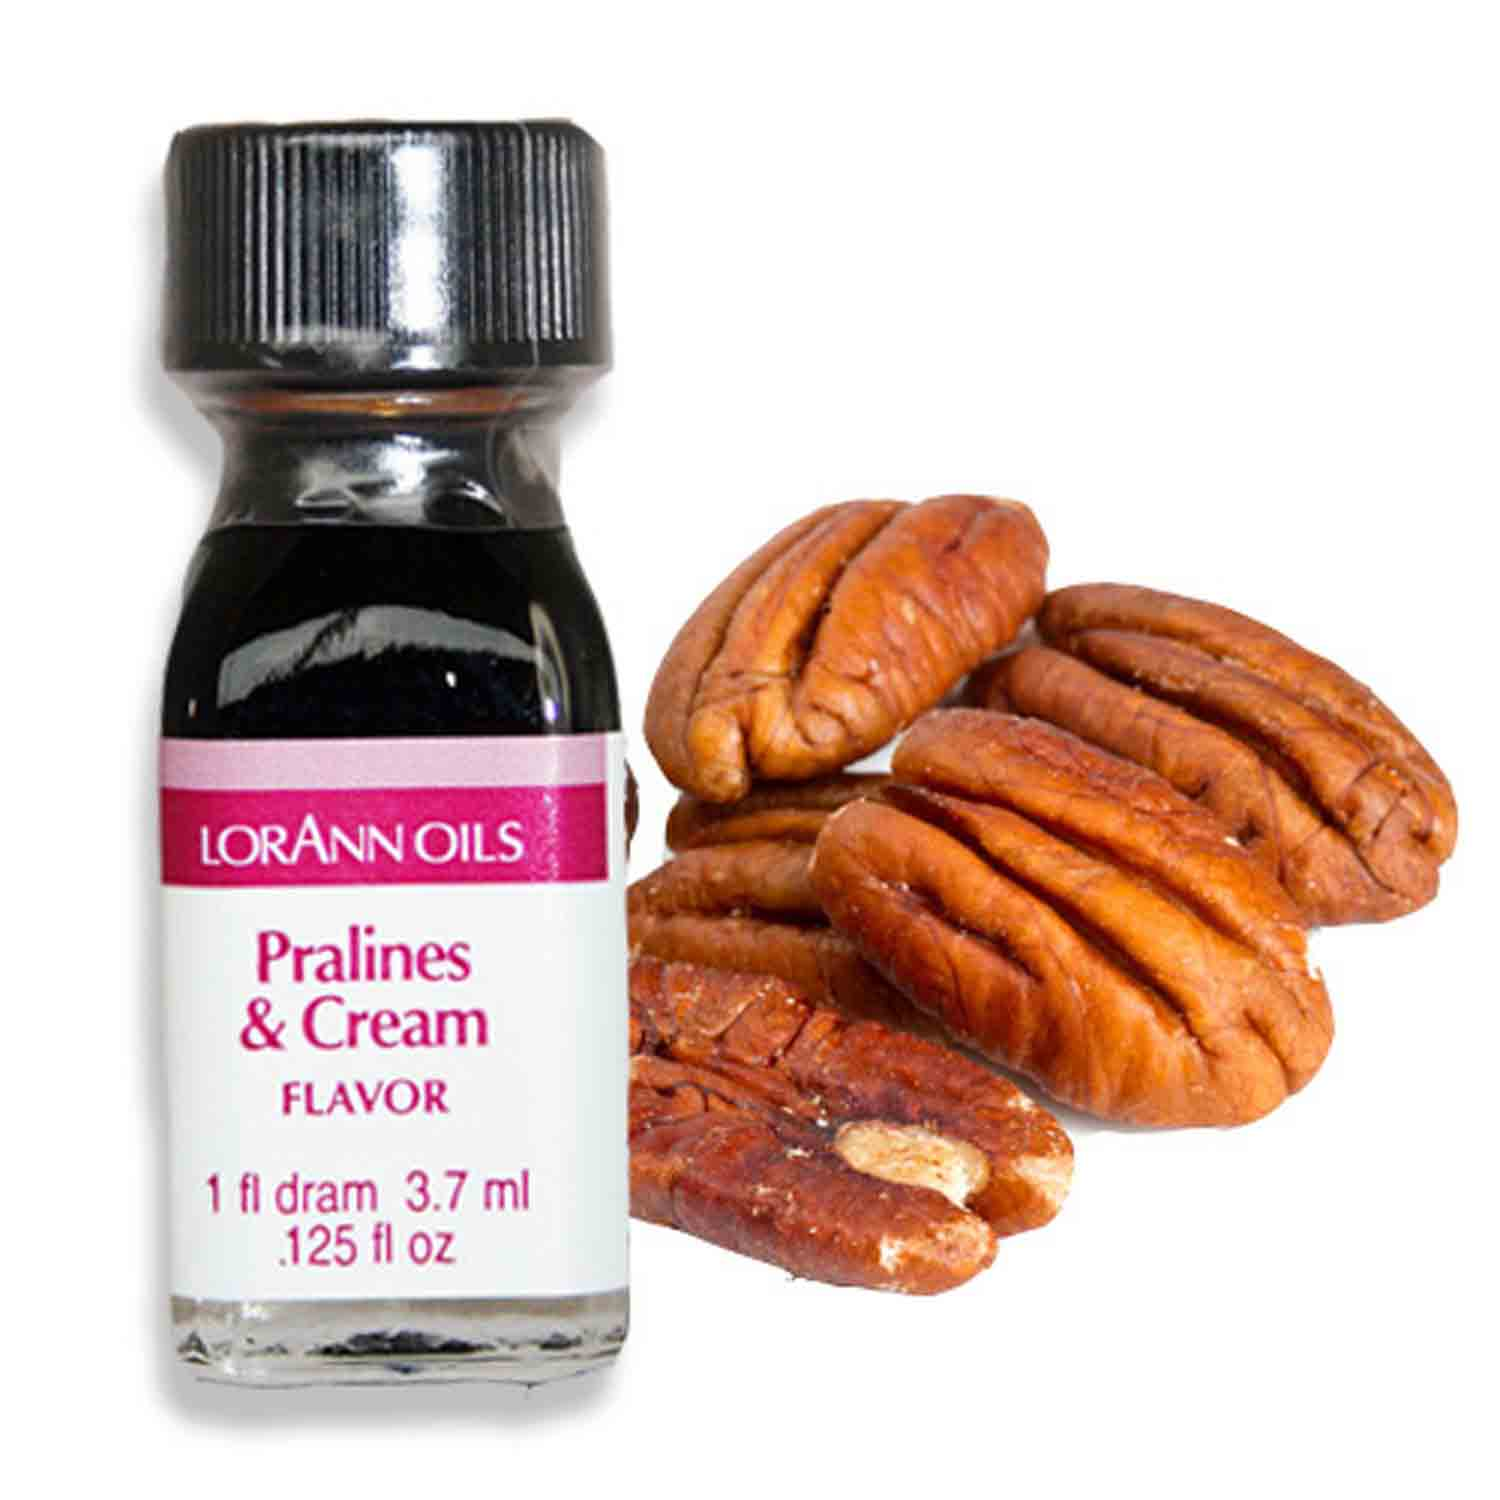 Pralines & Cream Super-Strength Flavor